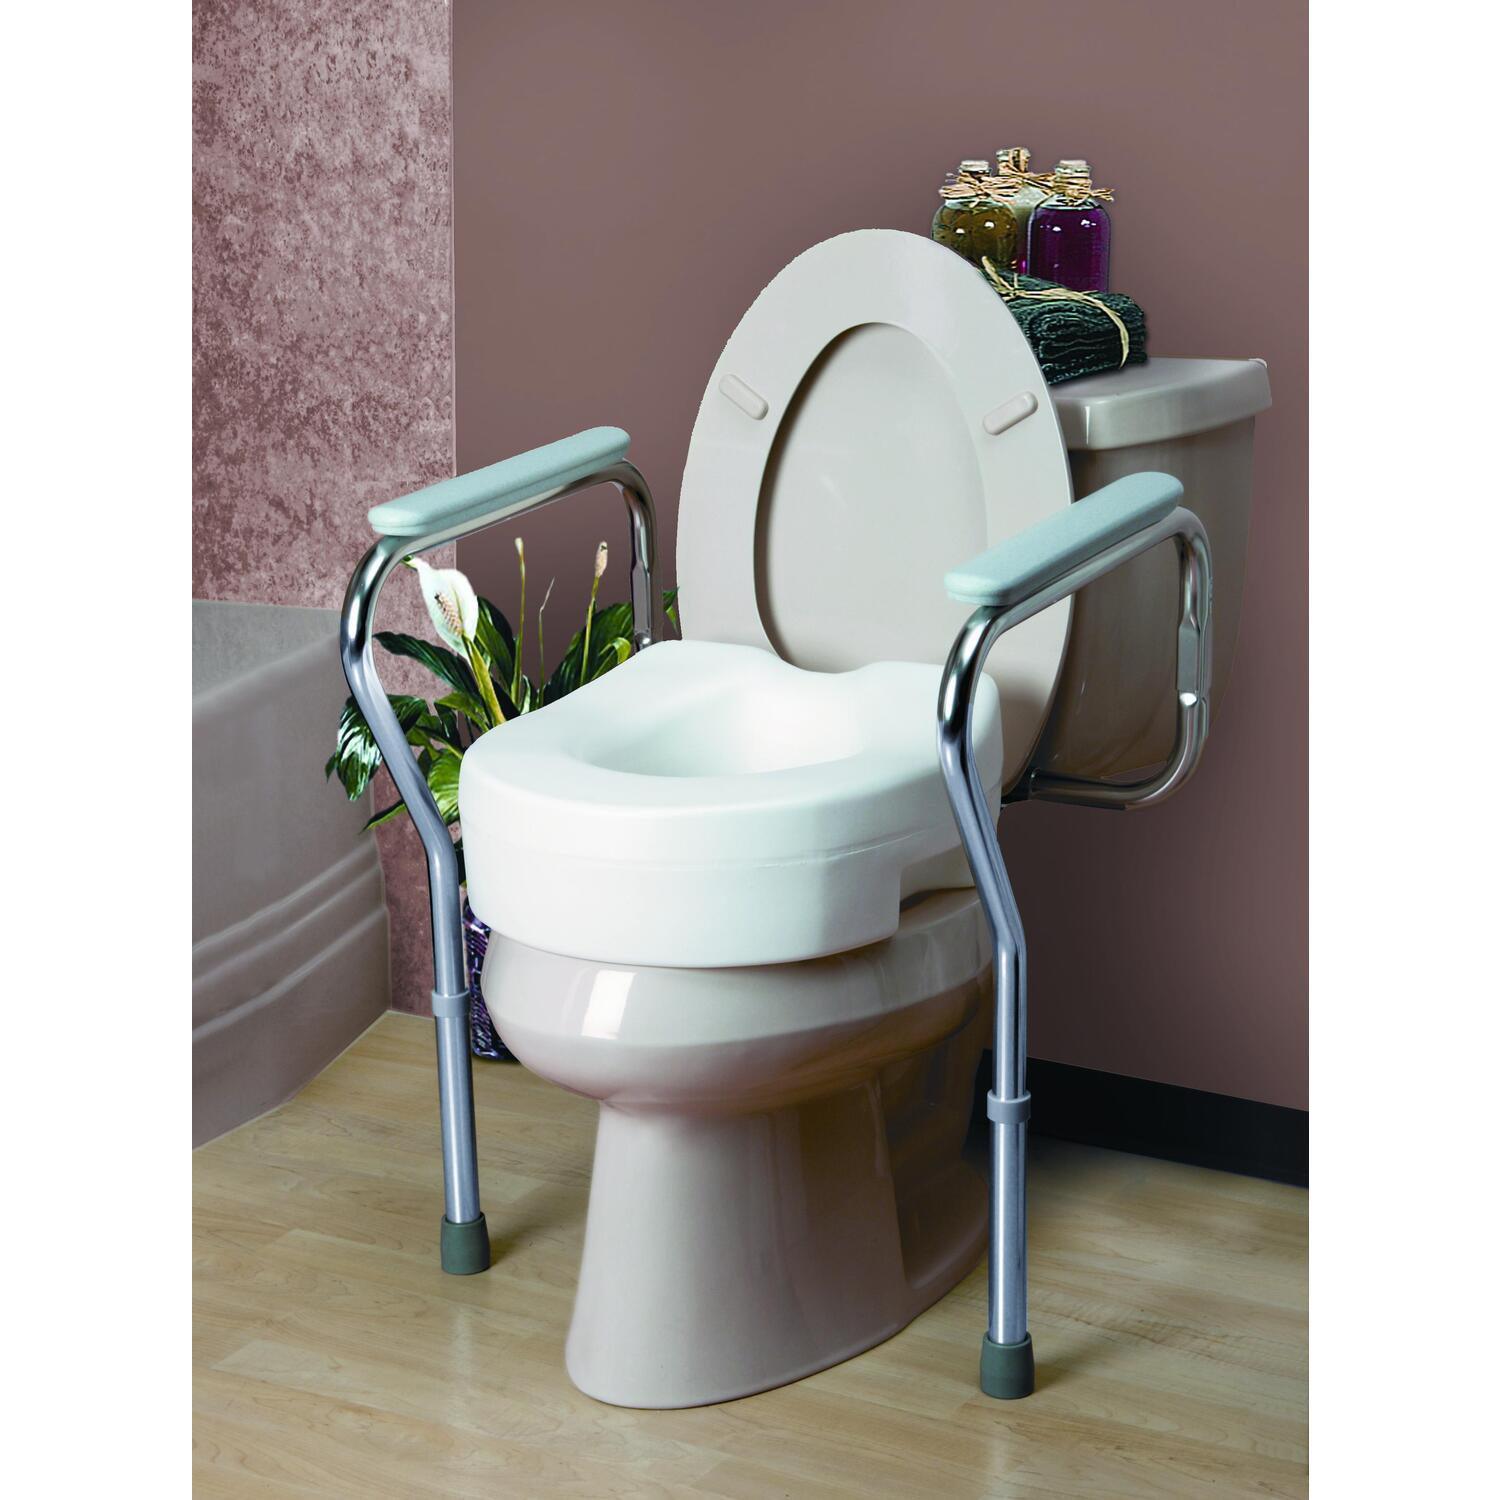 Invacare Toilet Safety Frame 3299 4694